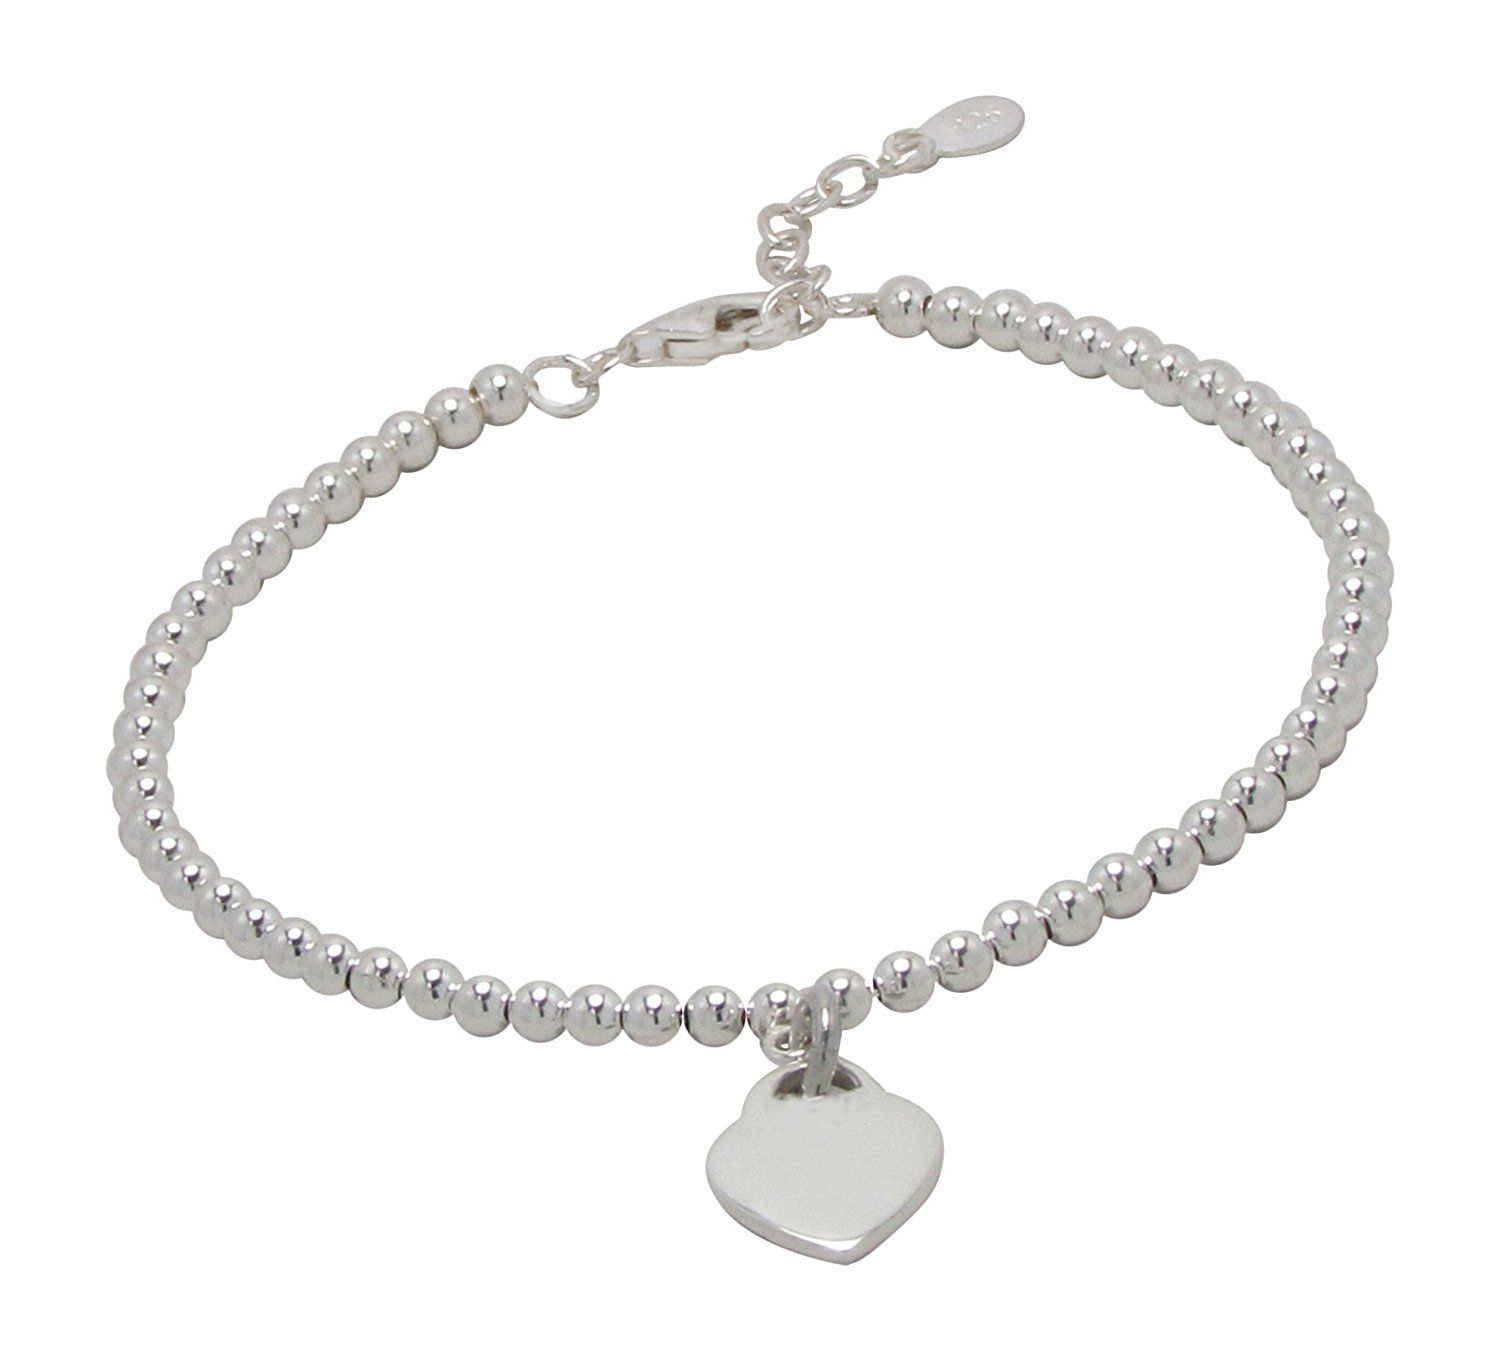 Agau sterling silver ball beaded bracelet with heart shaped pendant